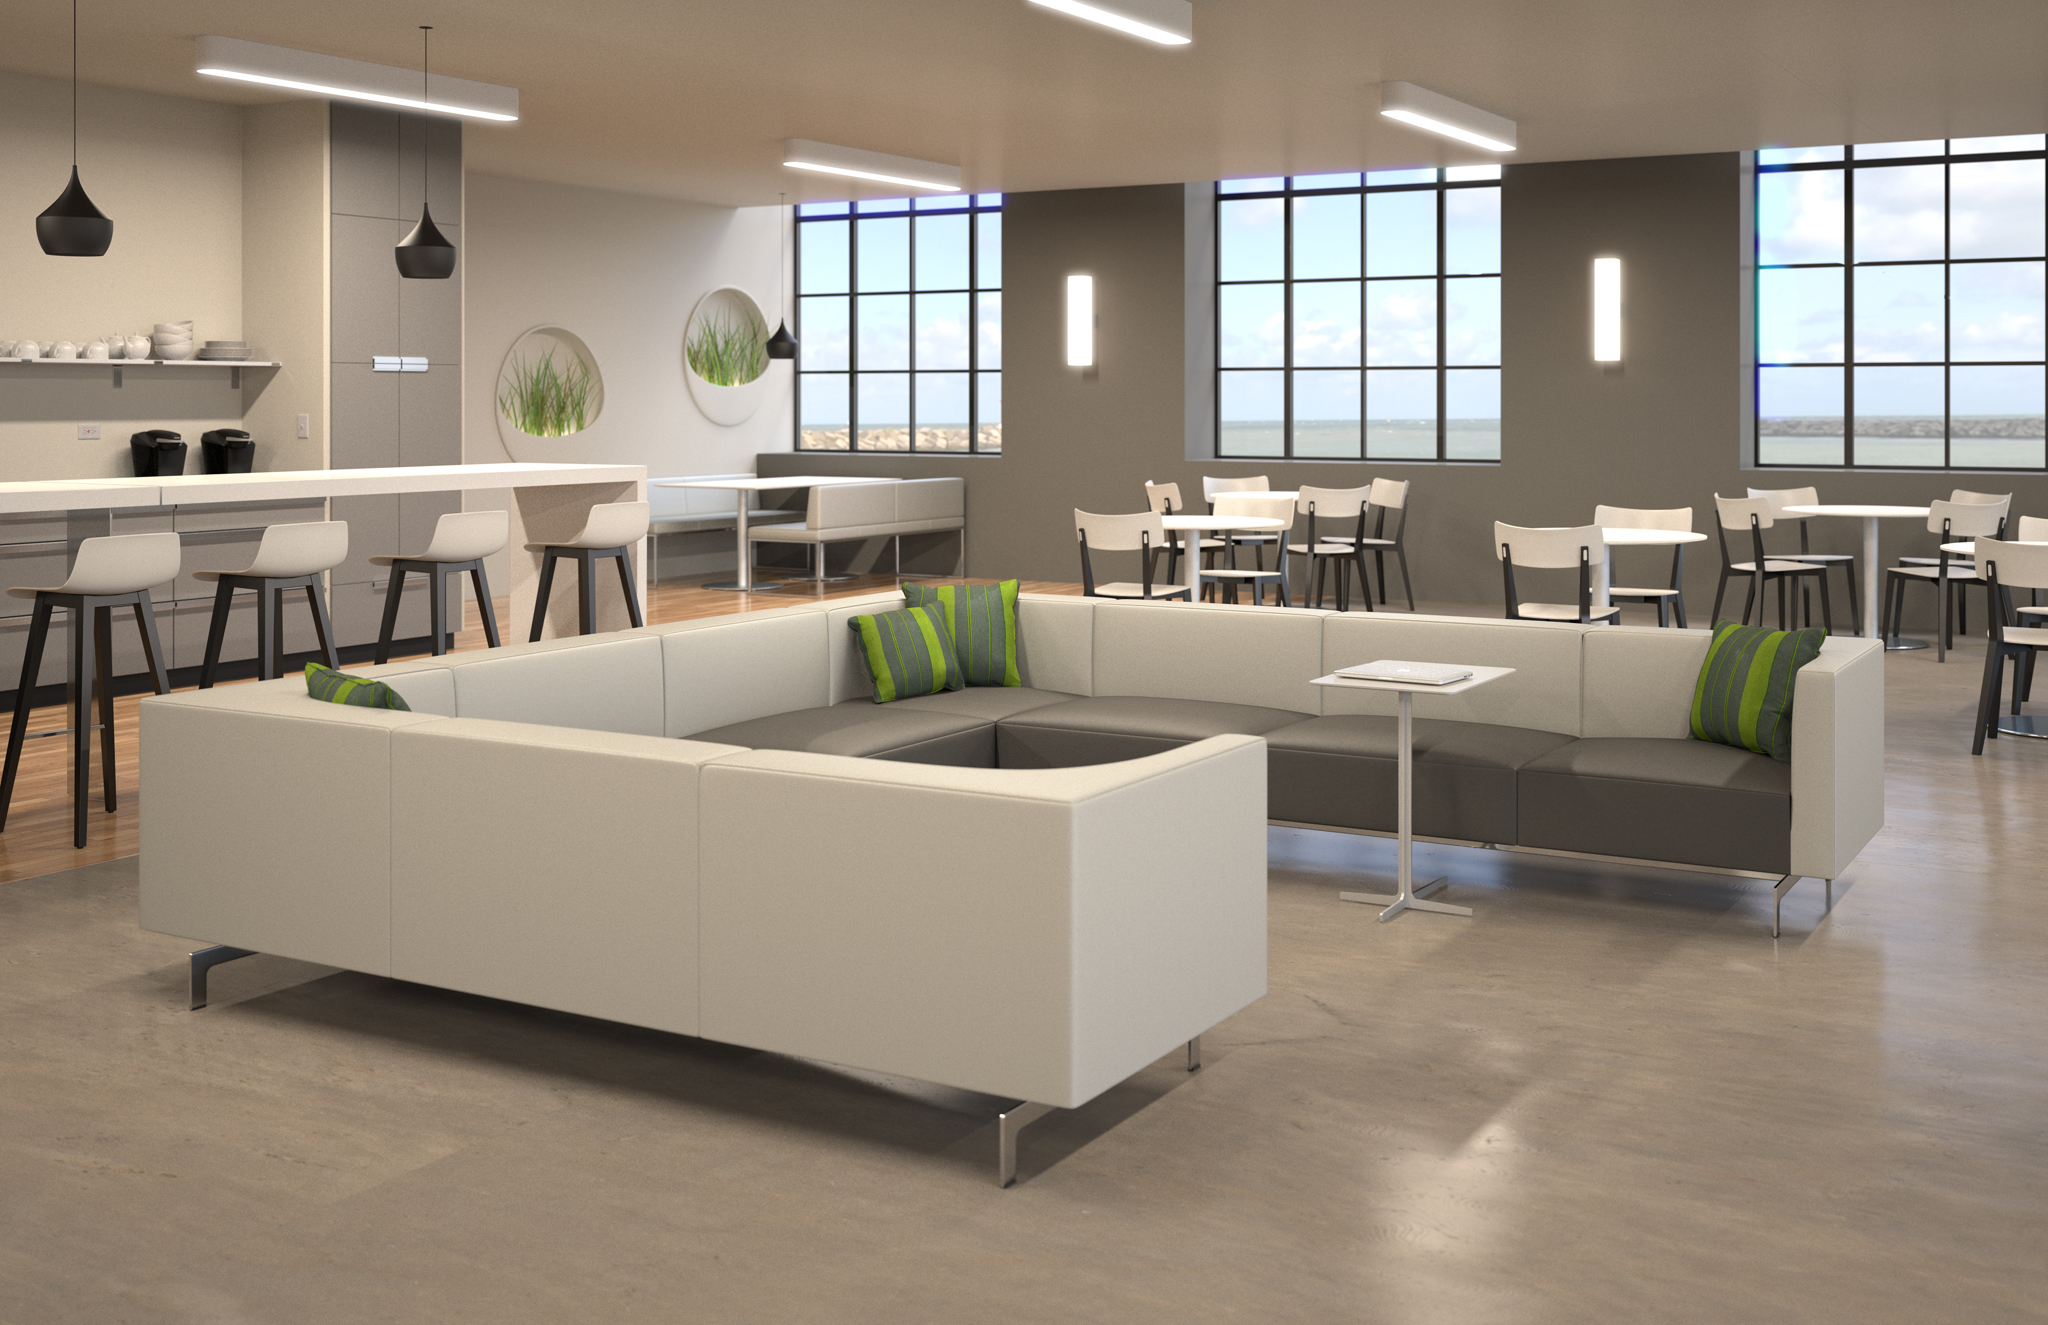 Davis Furniture NeoCon 2015 Hypothetical